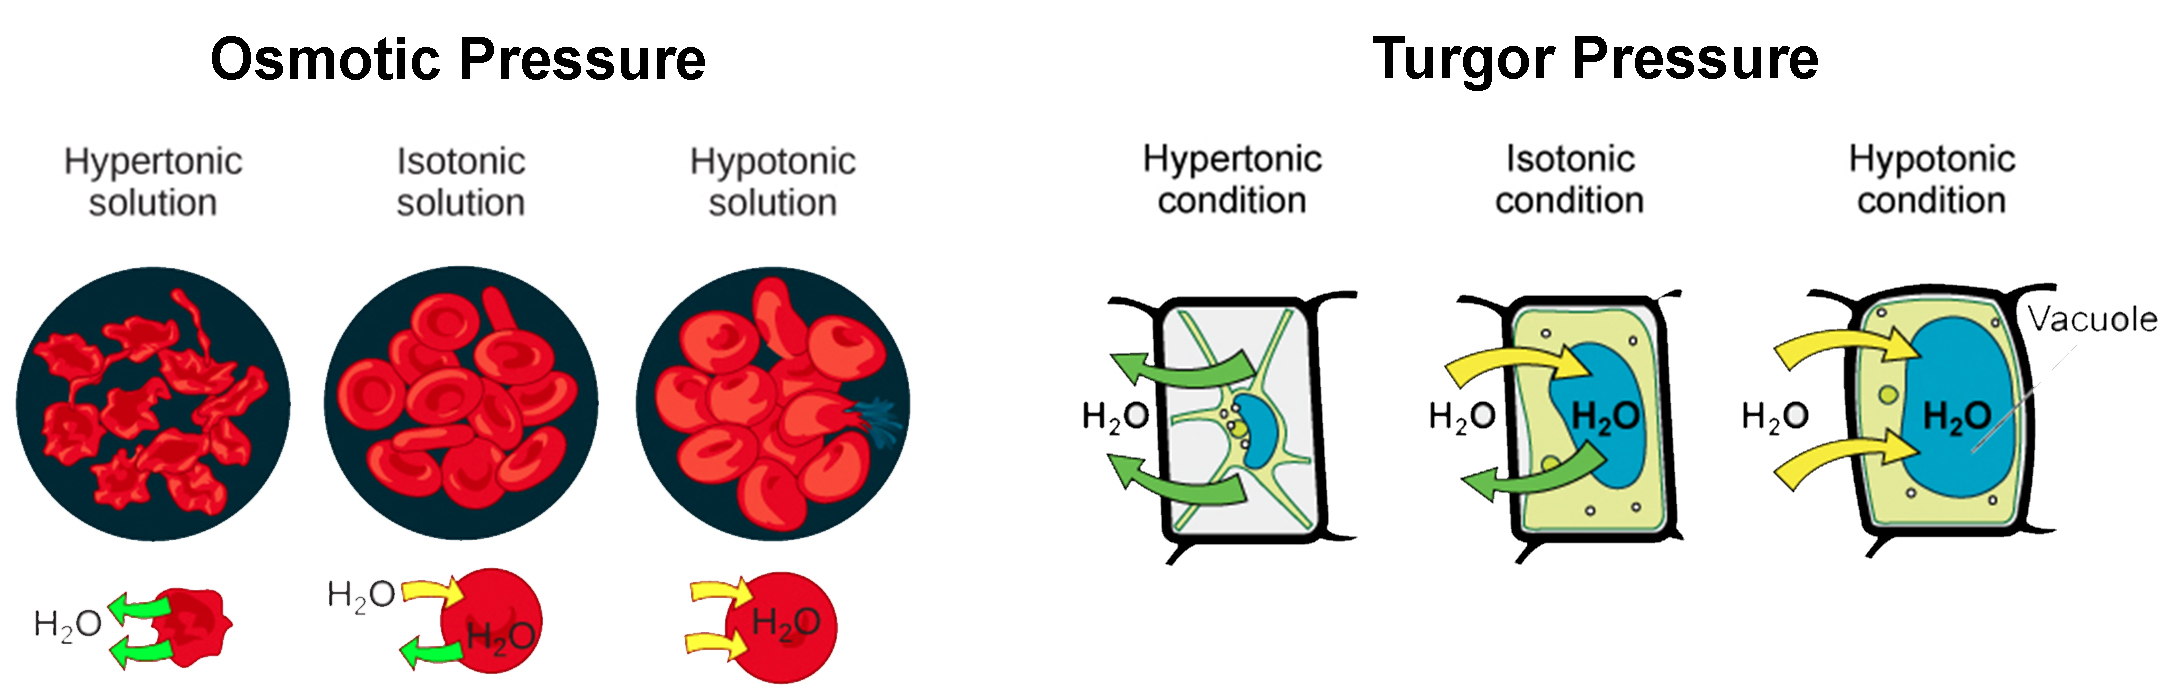 Part a: osmotic pressure. The left part of this illustration shows shriveled red blood cells bathed in a hypertonic solution. The middle part shows healthy red blood cells bathed in an isotonic solution, and the right part shows bloated red blood cells bathed in a hypotonic solution. Part b: turgor pressure. The left part of this image shows a plant cell bathed in a hypertonic solution so that the plasma membrane has pulled away completely from the cell wall, and the central vacuole has shrunk. The middle part shows a plant cell bathed in an isotonic solution; the plasma membrane has pulled away from the cell wall a bit, and the central vacuole has shrunk. The right part shows a plant cell in a hypotonic solution. The central vacuole is large, and the plasma membrane is pressed against the cell wall.